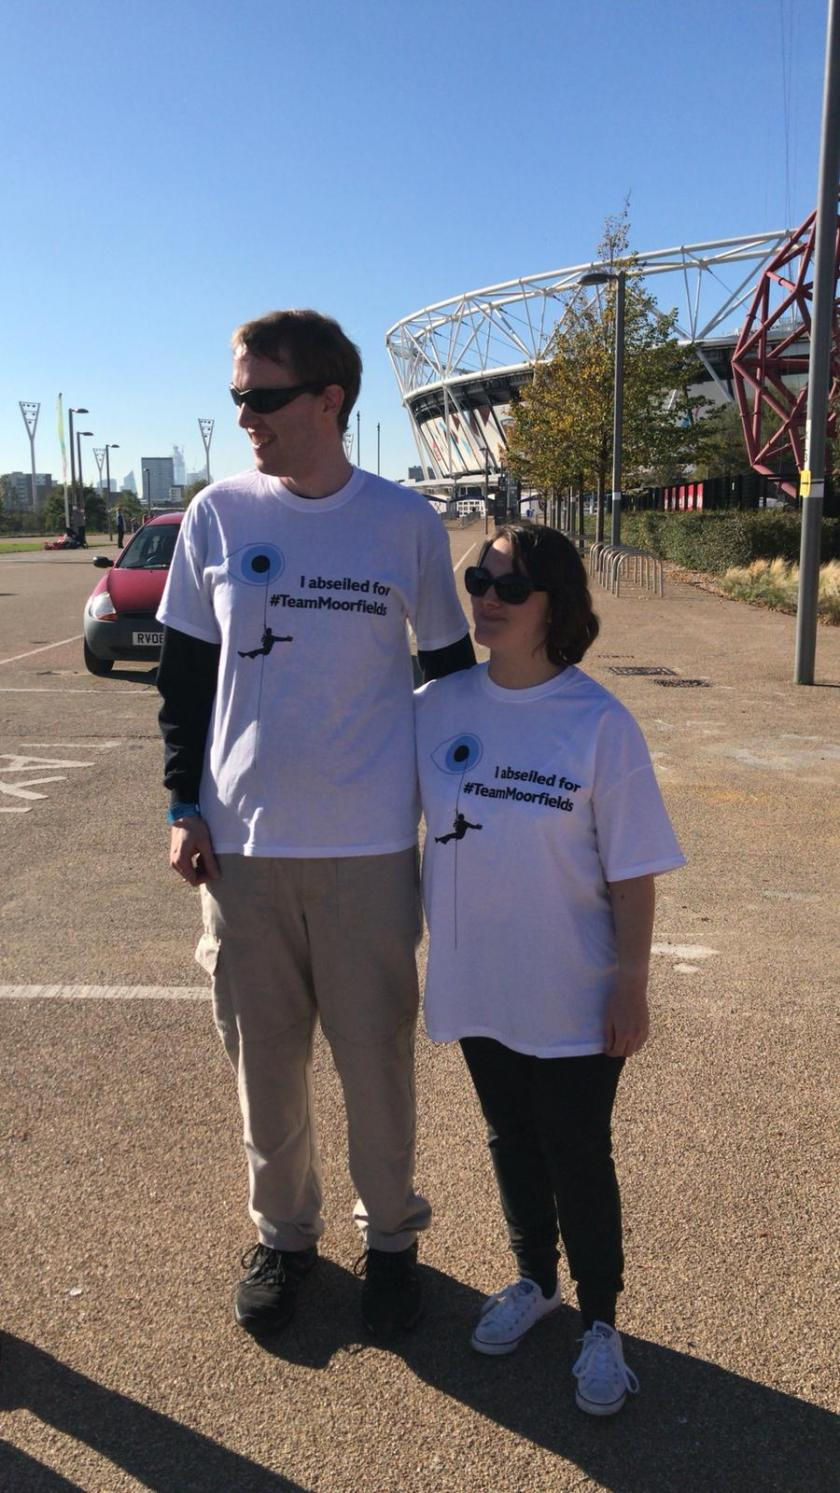 Glen and Claire standing together in the sunshine together, wearing white Moorfields Eye Charity abseil t-shirts and sunglasses, with the Olympic Stadium in the background.